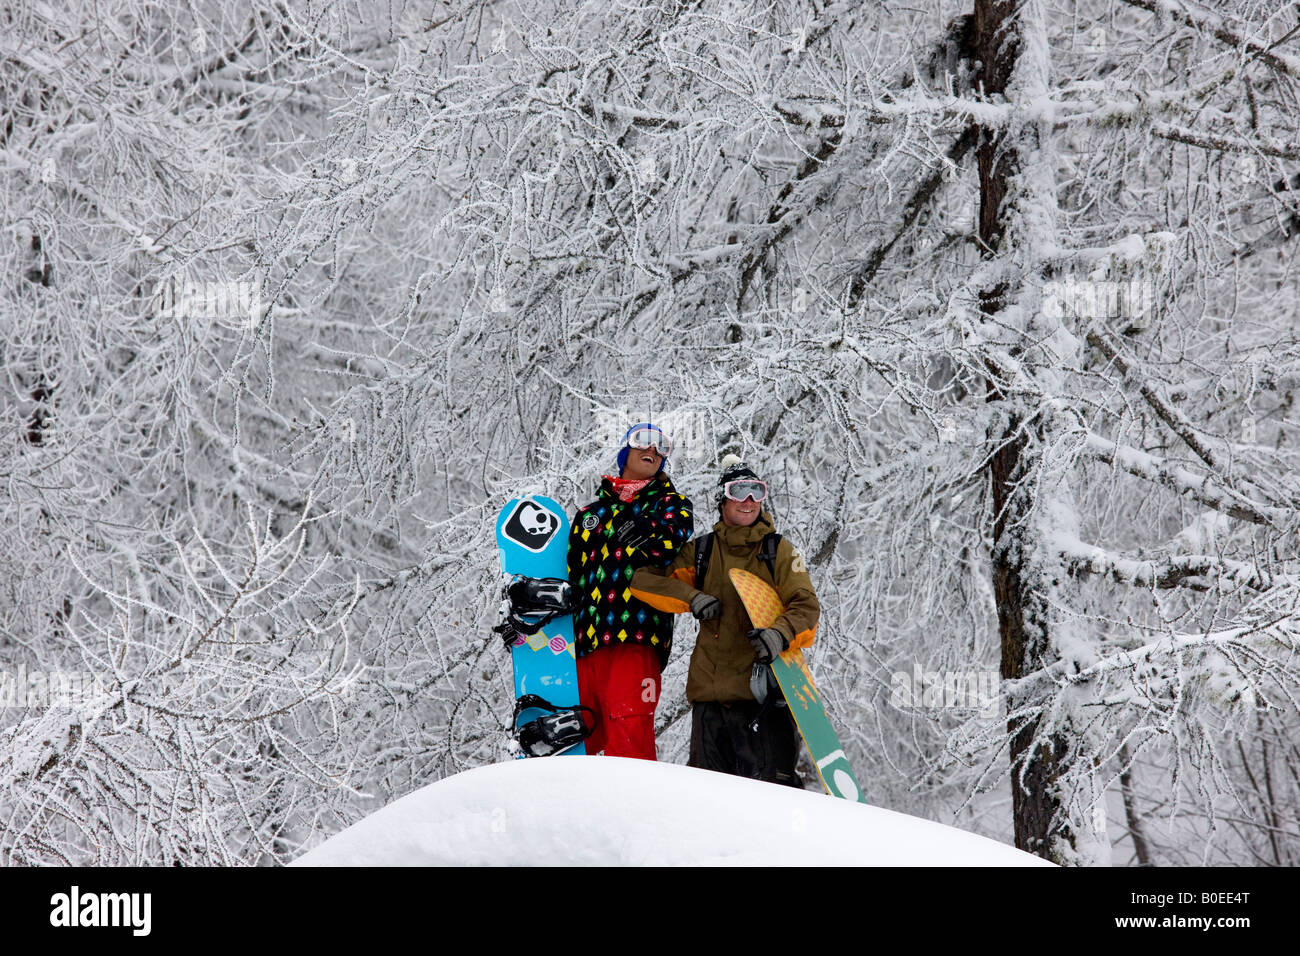 Snowboarders Clark Murray and Jo Howard look out over snowy alpine scene. - Stock Image